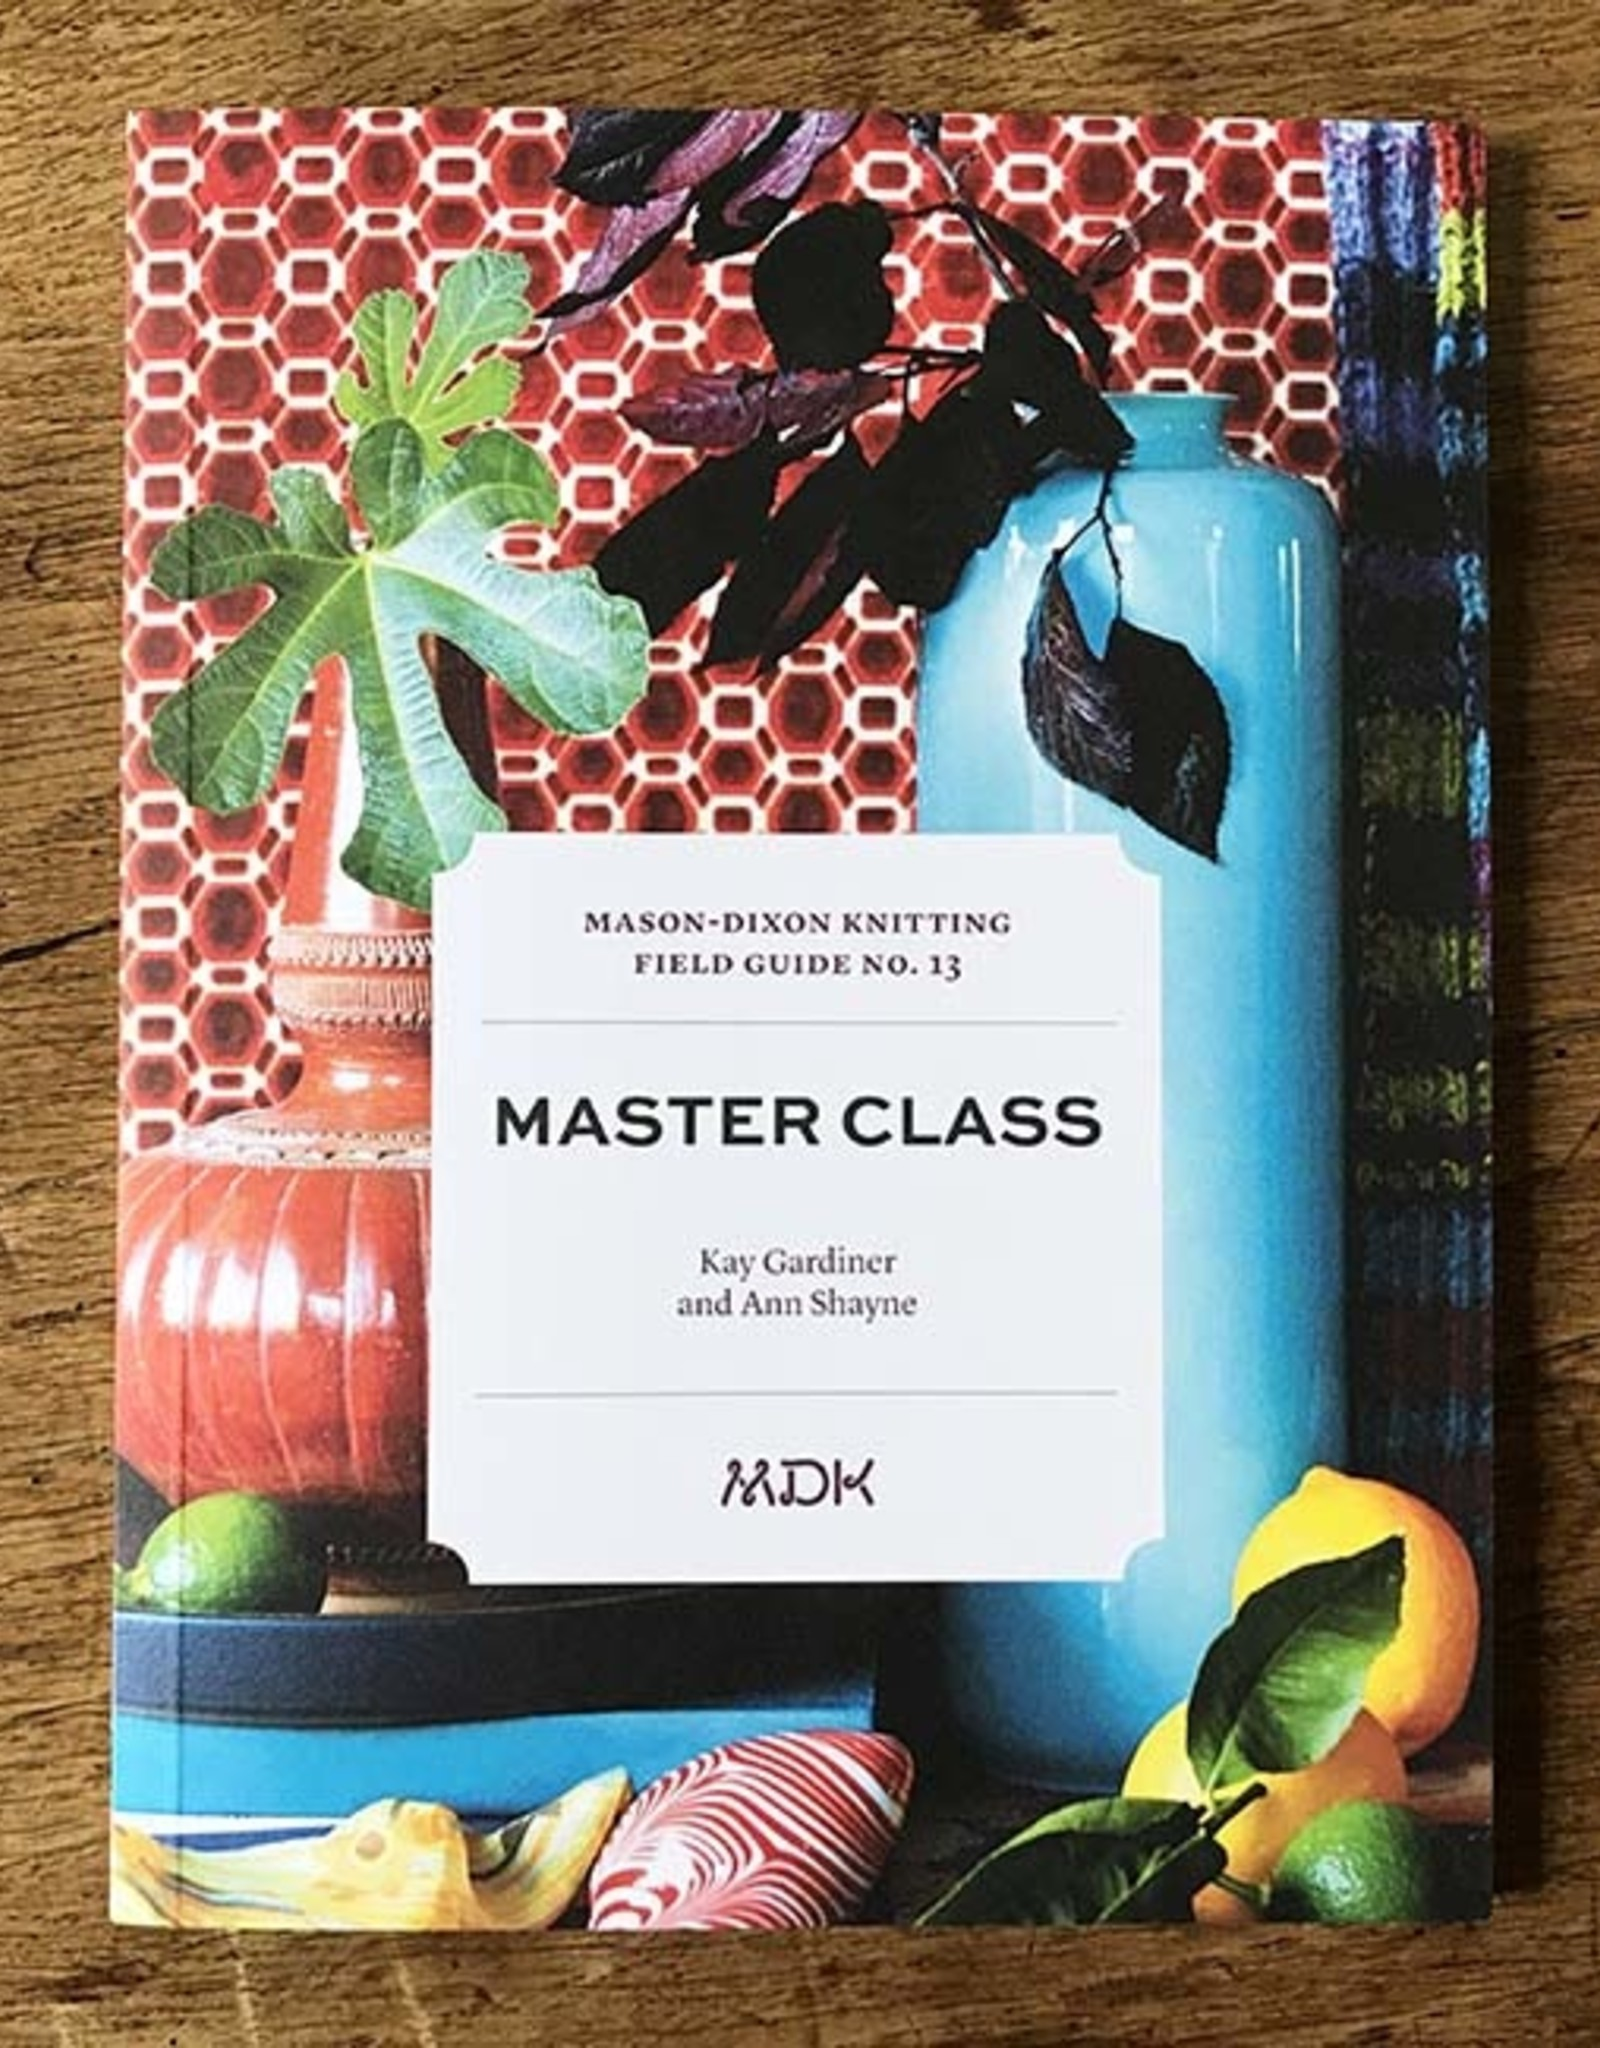 Modern Daily Knitting Modern Daily Field Guide No. 13: Master Class